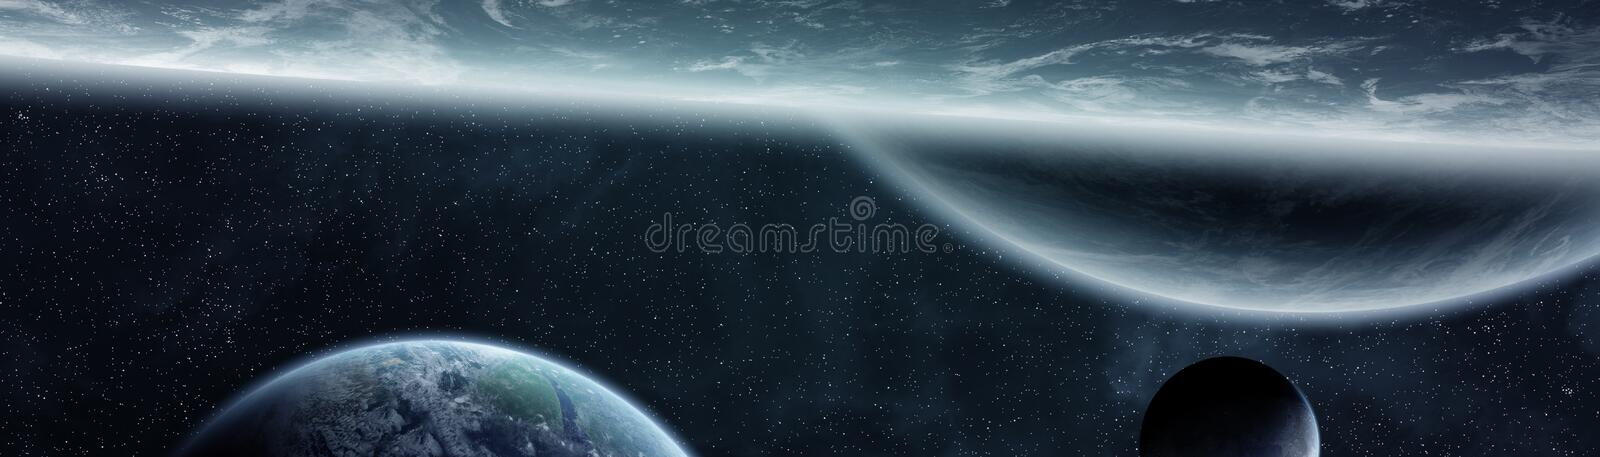 Panoramic view of planets in distant solar system 3D rendering e. Panoramic view of planets in distant solar system in space 3D rendering vector illustration